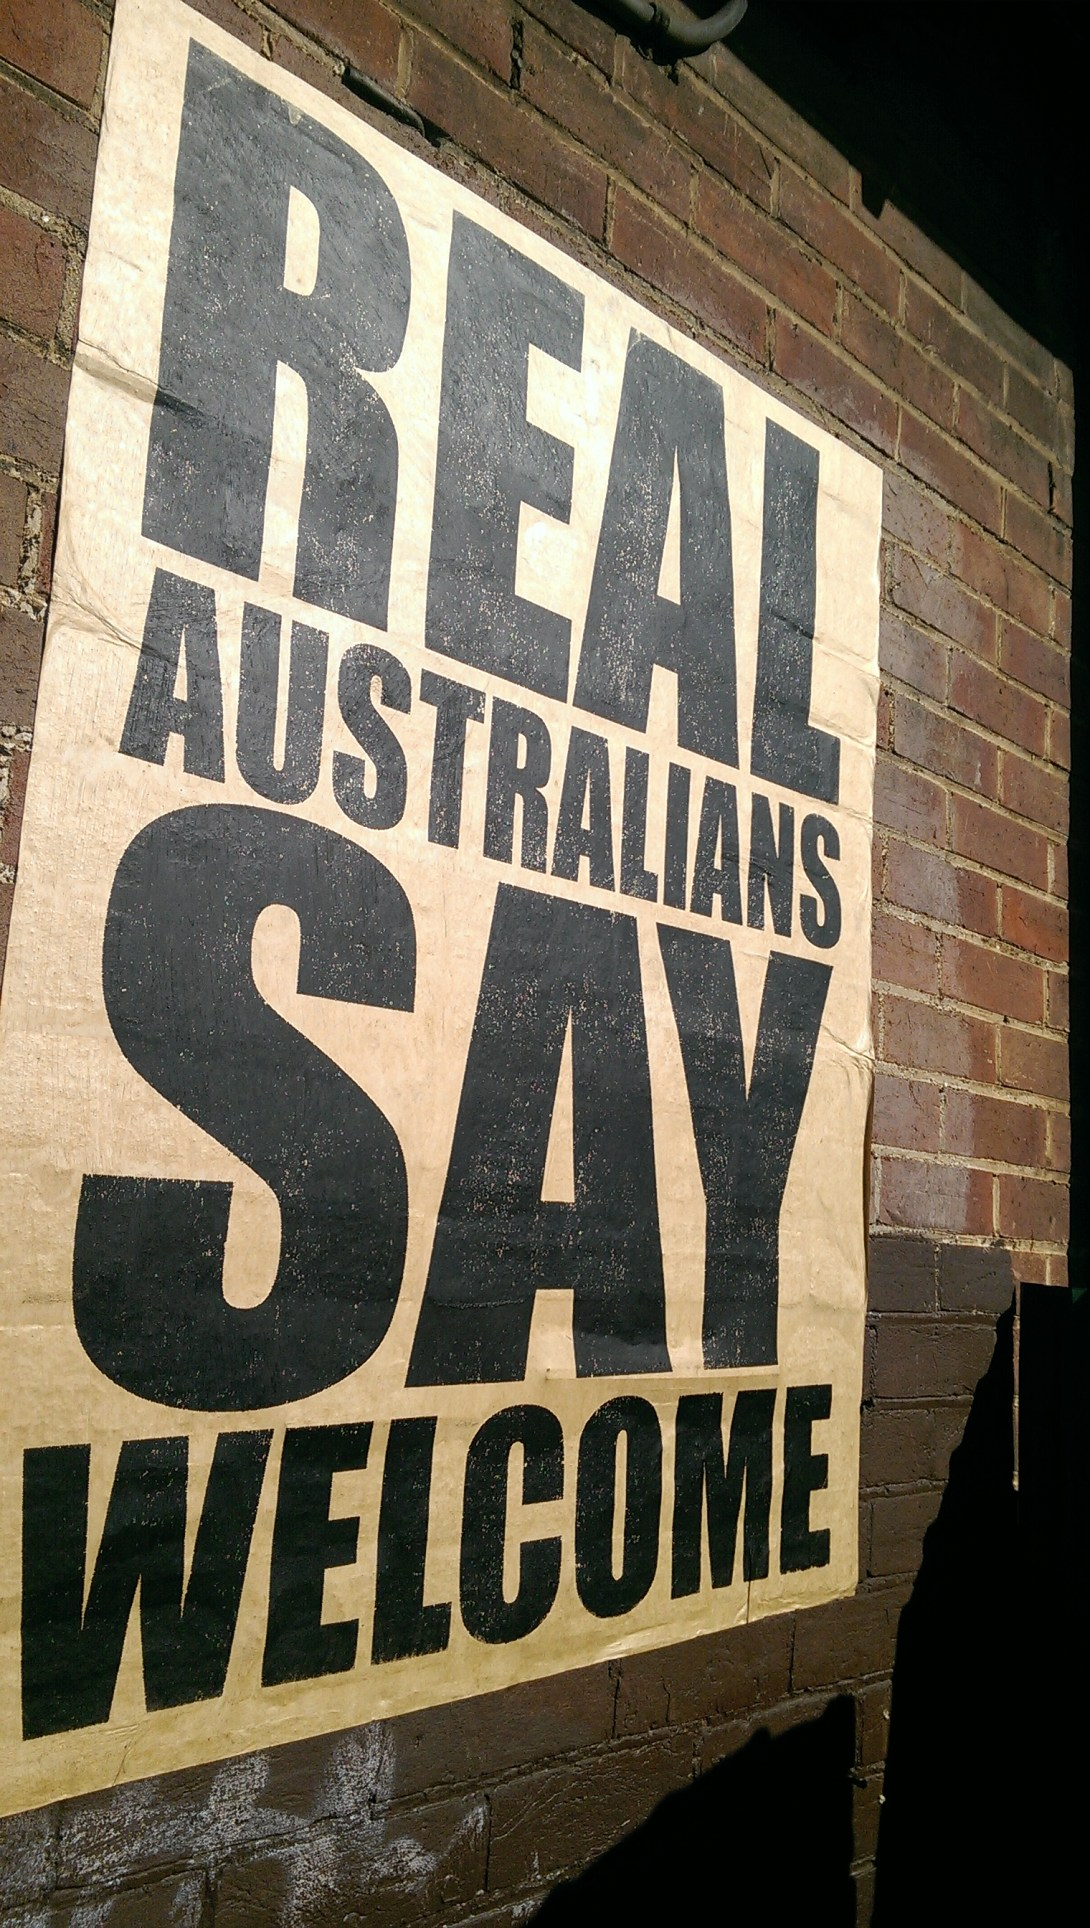 #immigration,#australia Real Australians say welcome  Adelaide  bekitschig blog